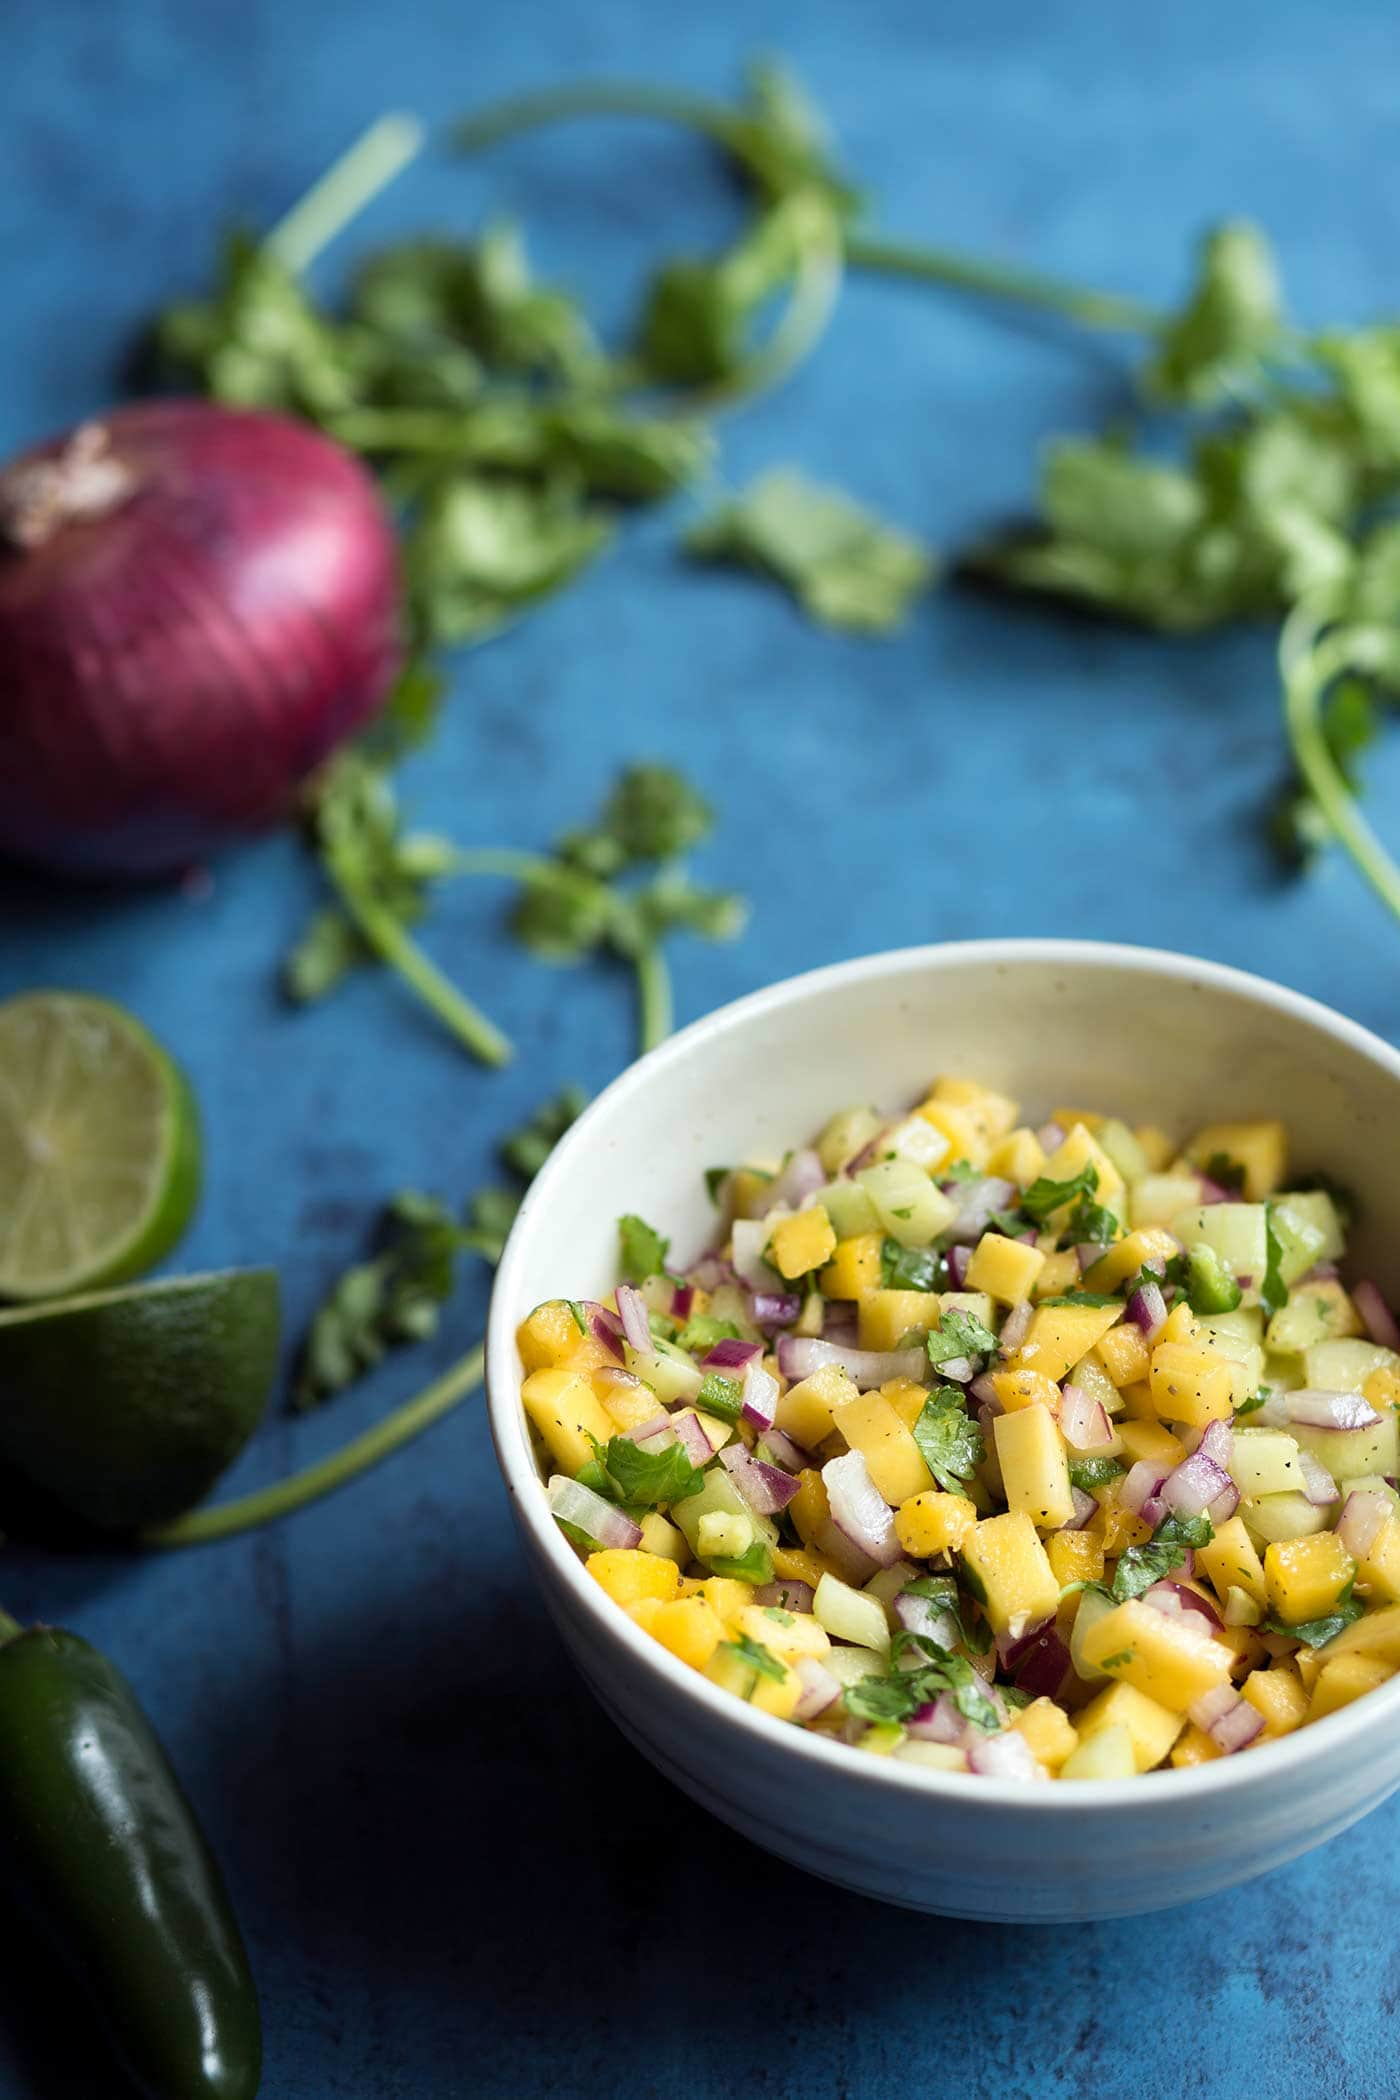 This mango salsa is fantastic serving with tortilla chips, but I also love using it as a topping for fish and chicken!